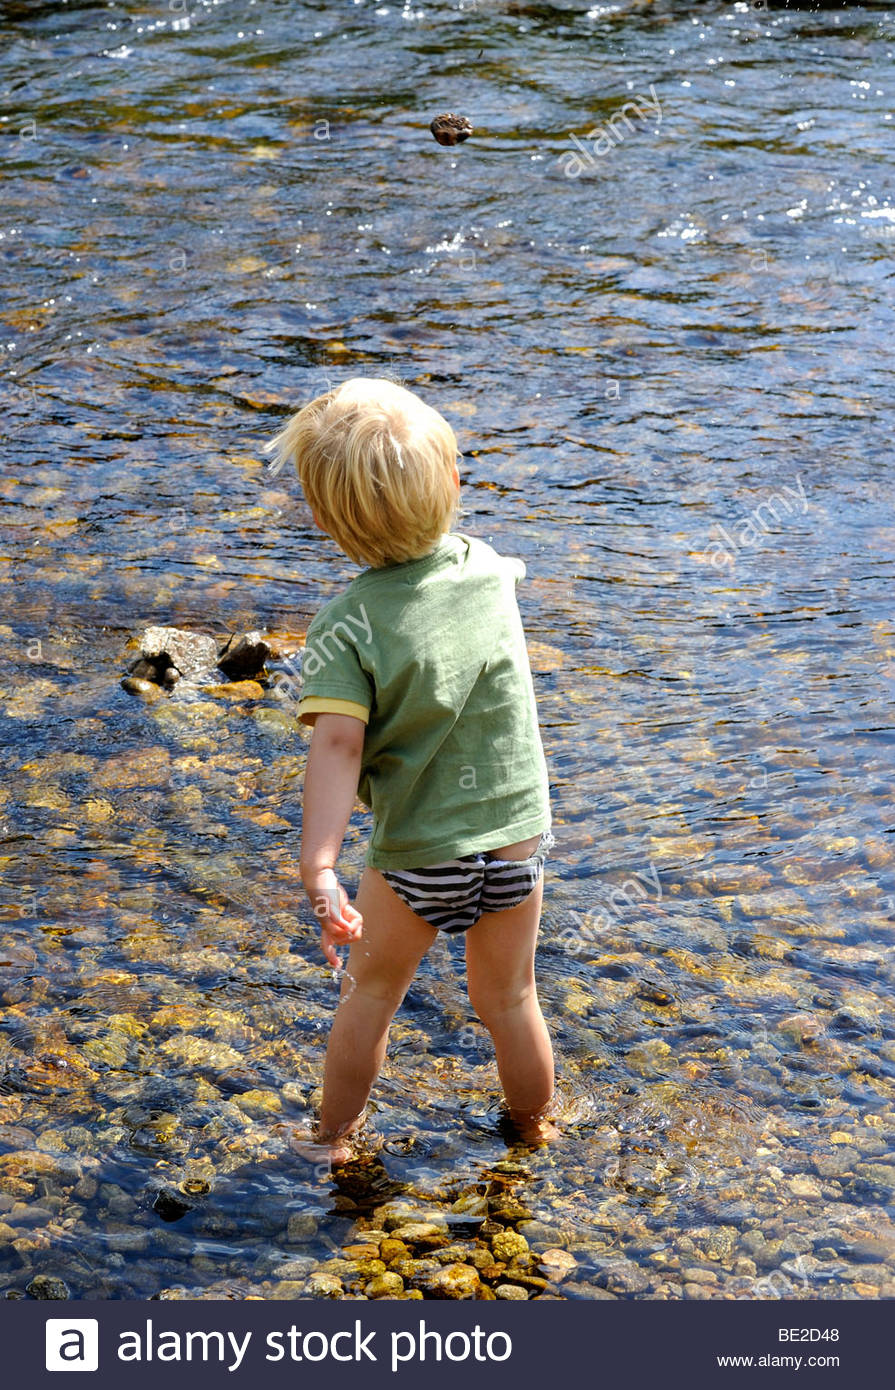 naked boy in river